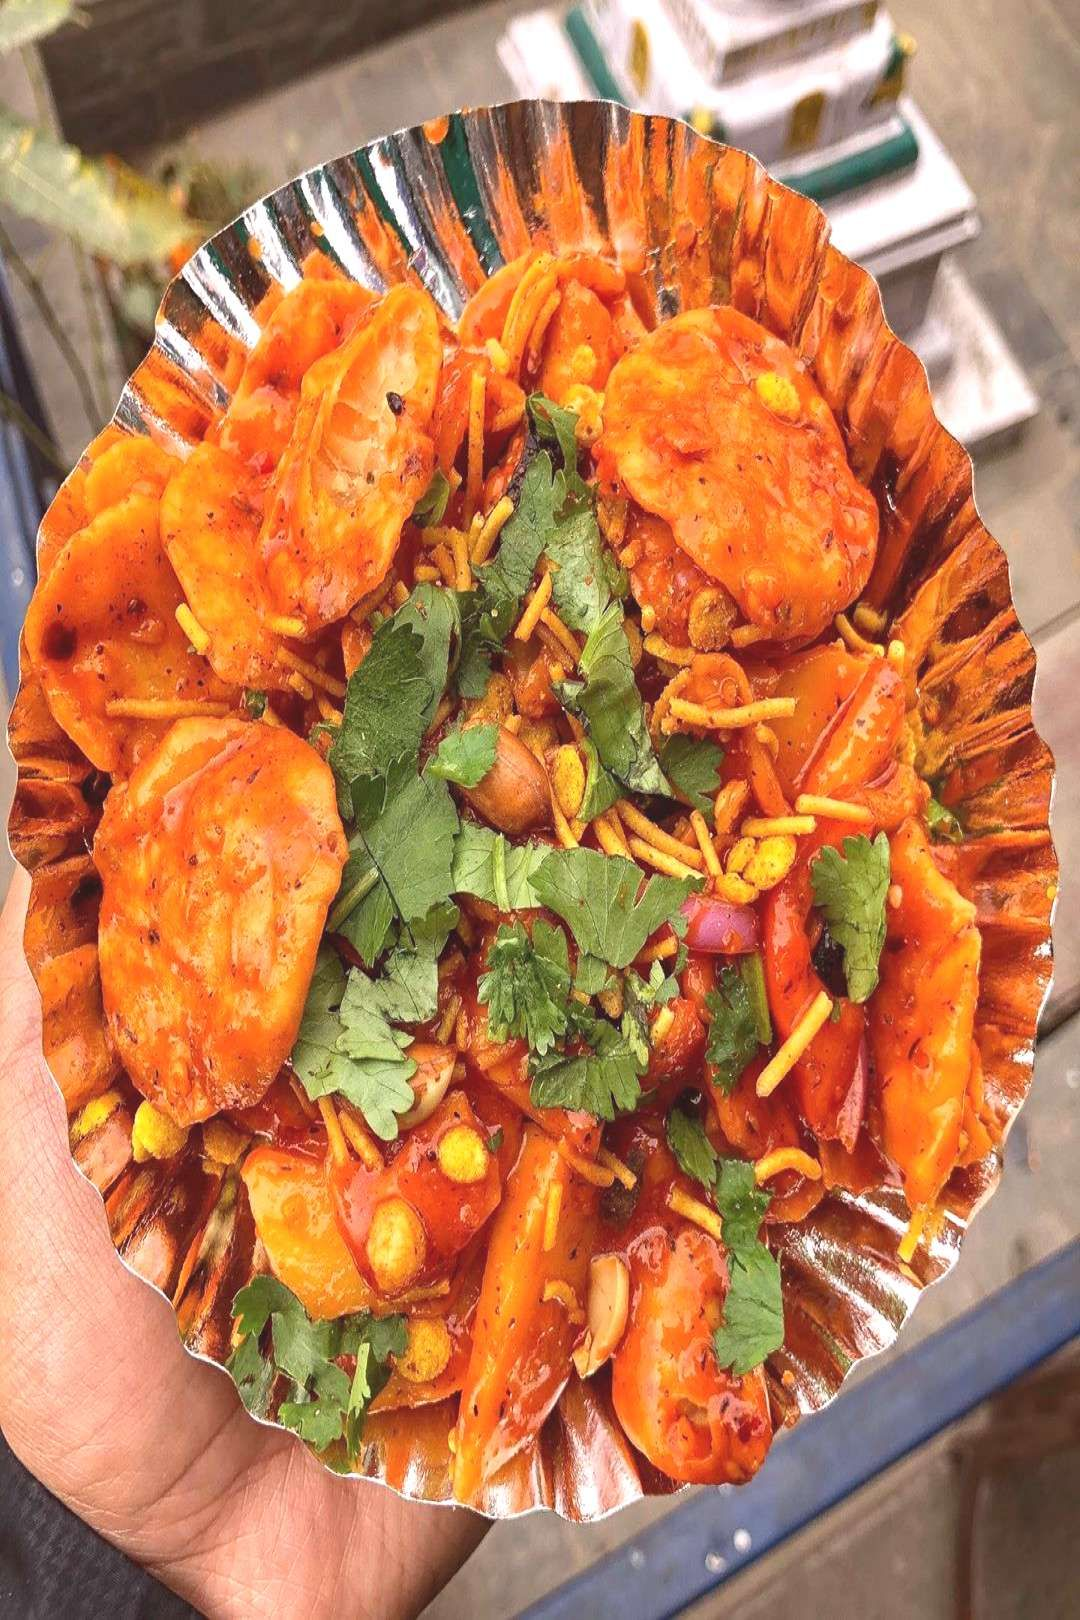 #details #mittho #paucha #sabse #papdi #chaat #below #kata #down #food SABSE MITTHO PAPDI CHAAT KATA PAUCHA️ . Details down below, . :You can find Food and drink and more on our website.SABSE MITTHO PAPDI CHAAT KATA PAUCHA️ . Details down b...